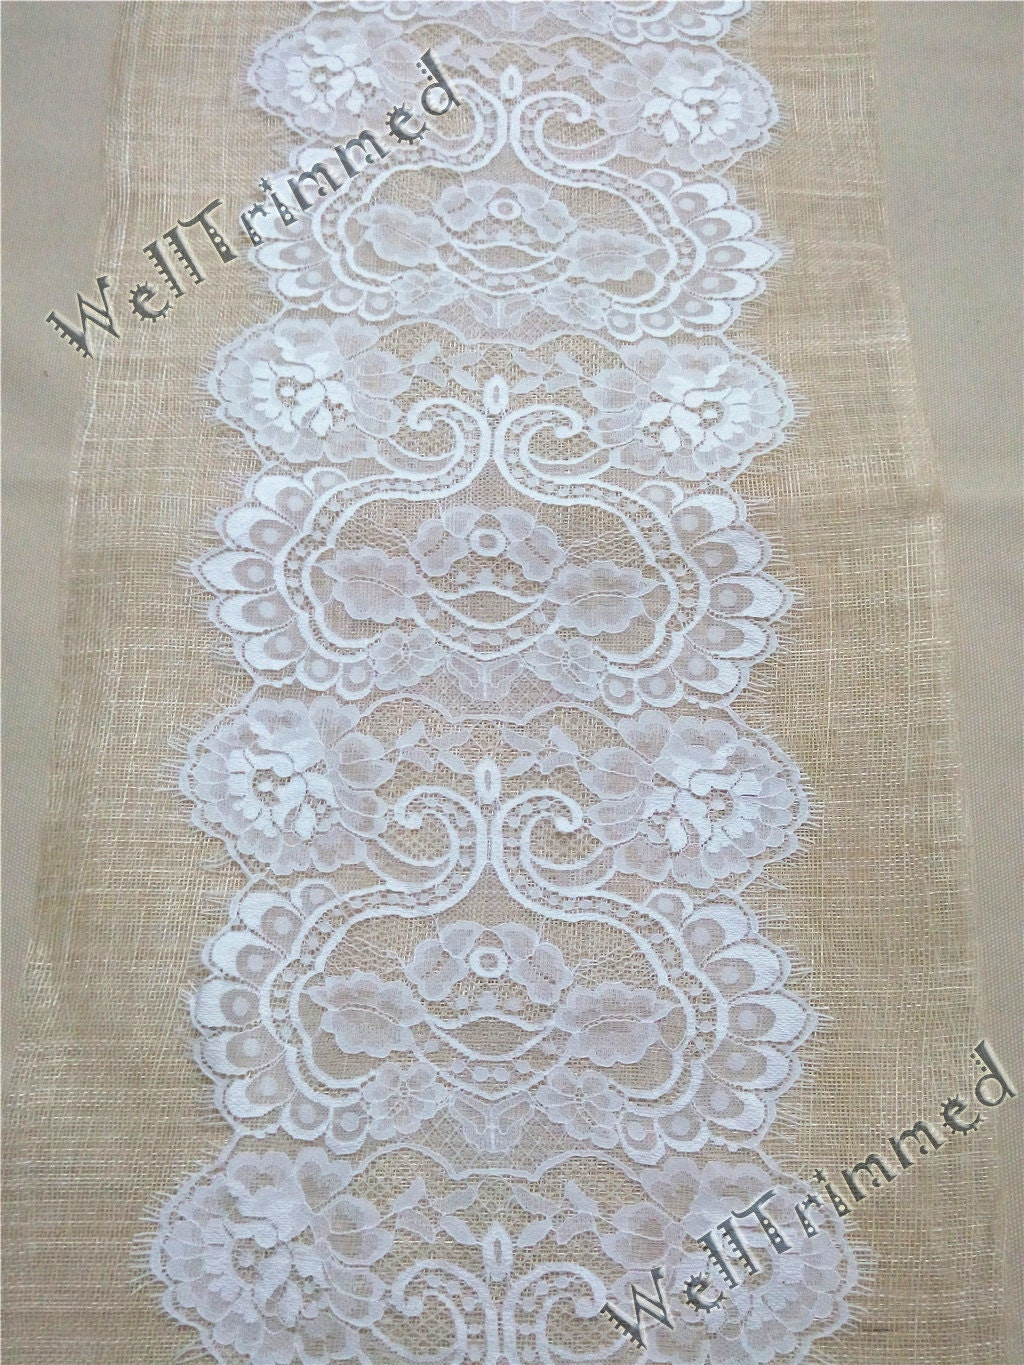 10ft lace table runner 11 wide lace table runner lace for 10 ft table runner